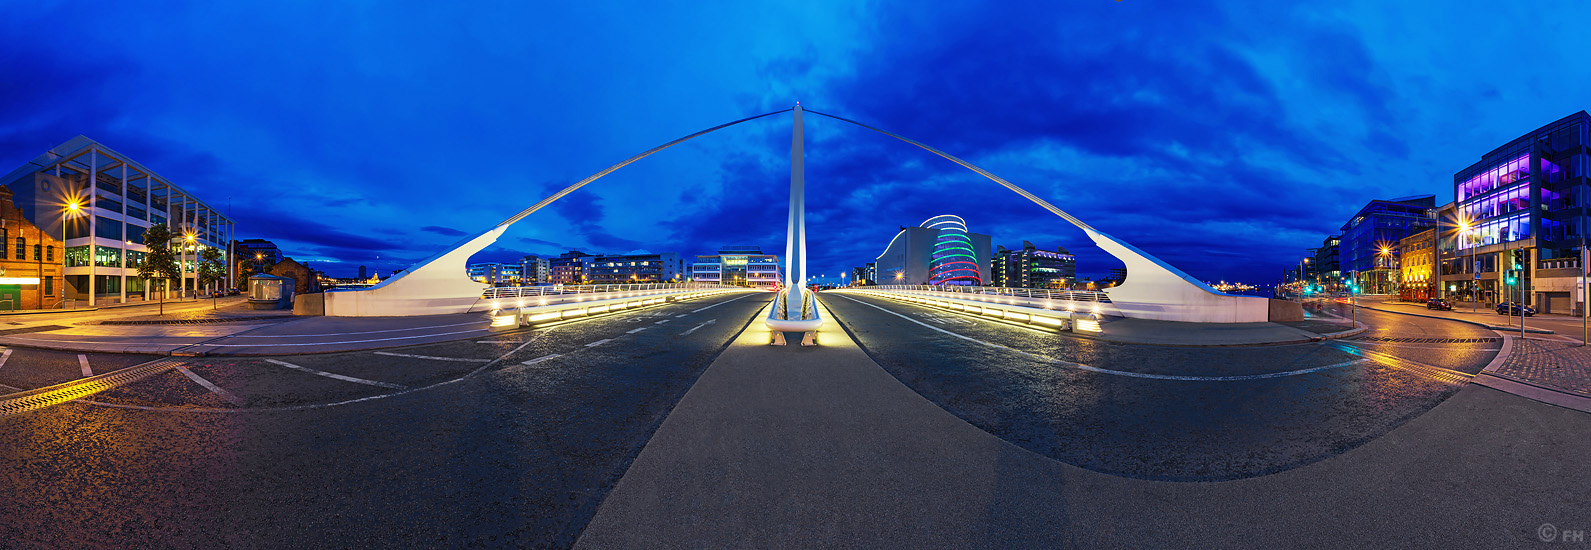 Dublin_Bridge_2_Pano_k